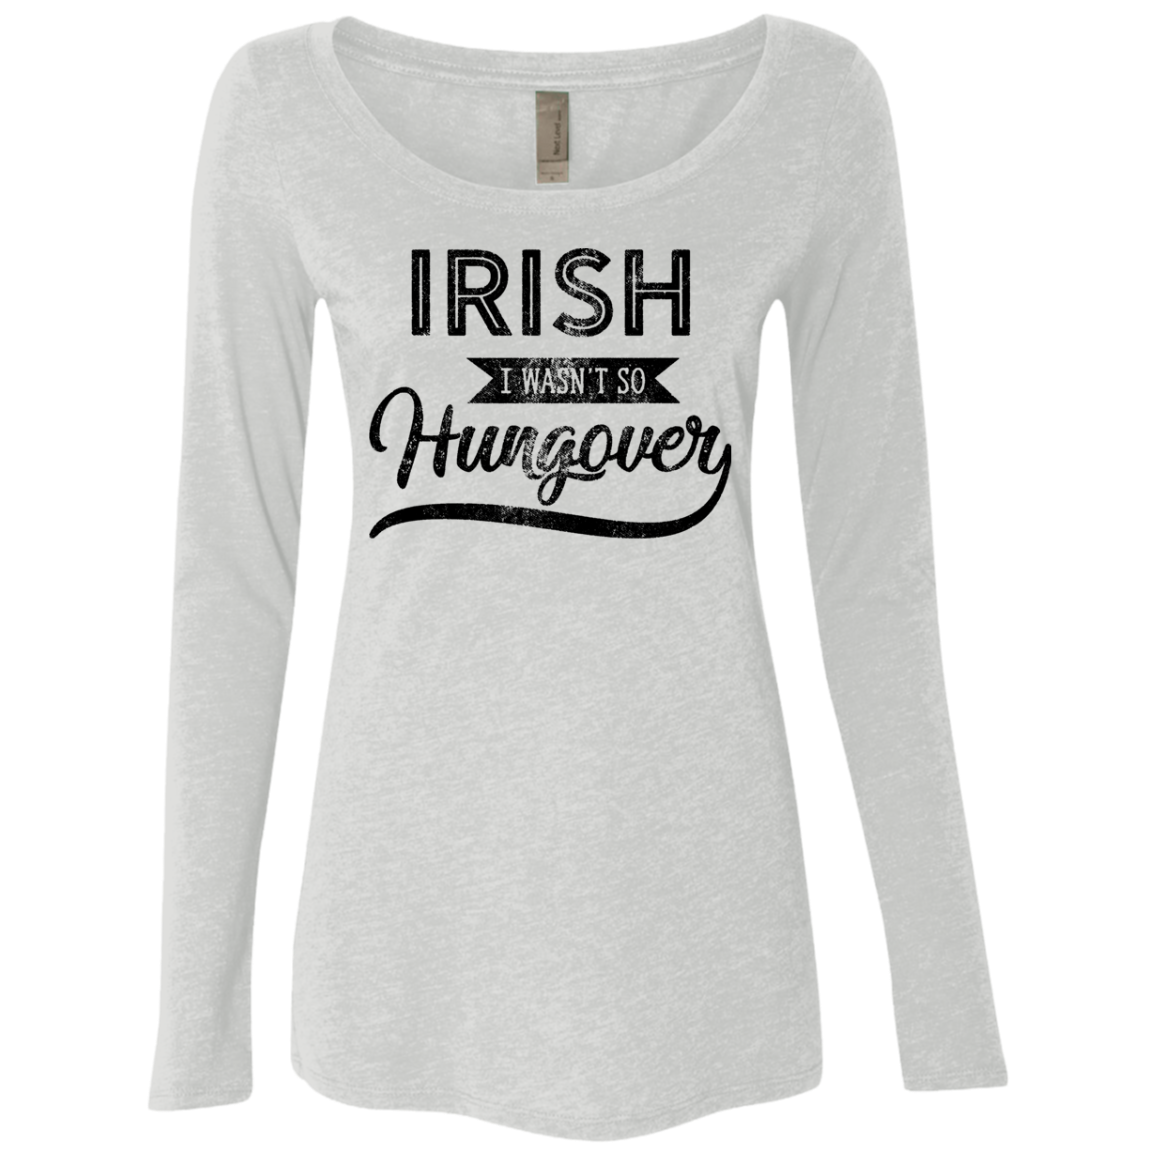 Irish I Wasn't So Hungover Women's Long Sleeve Tee